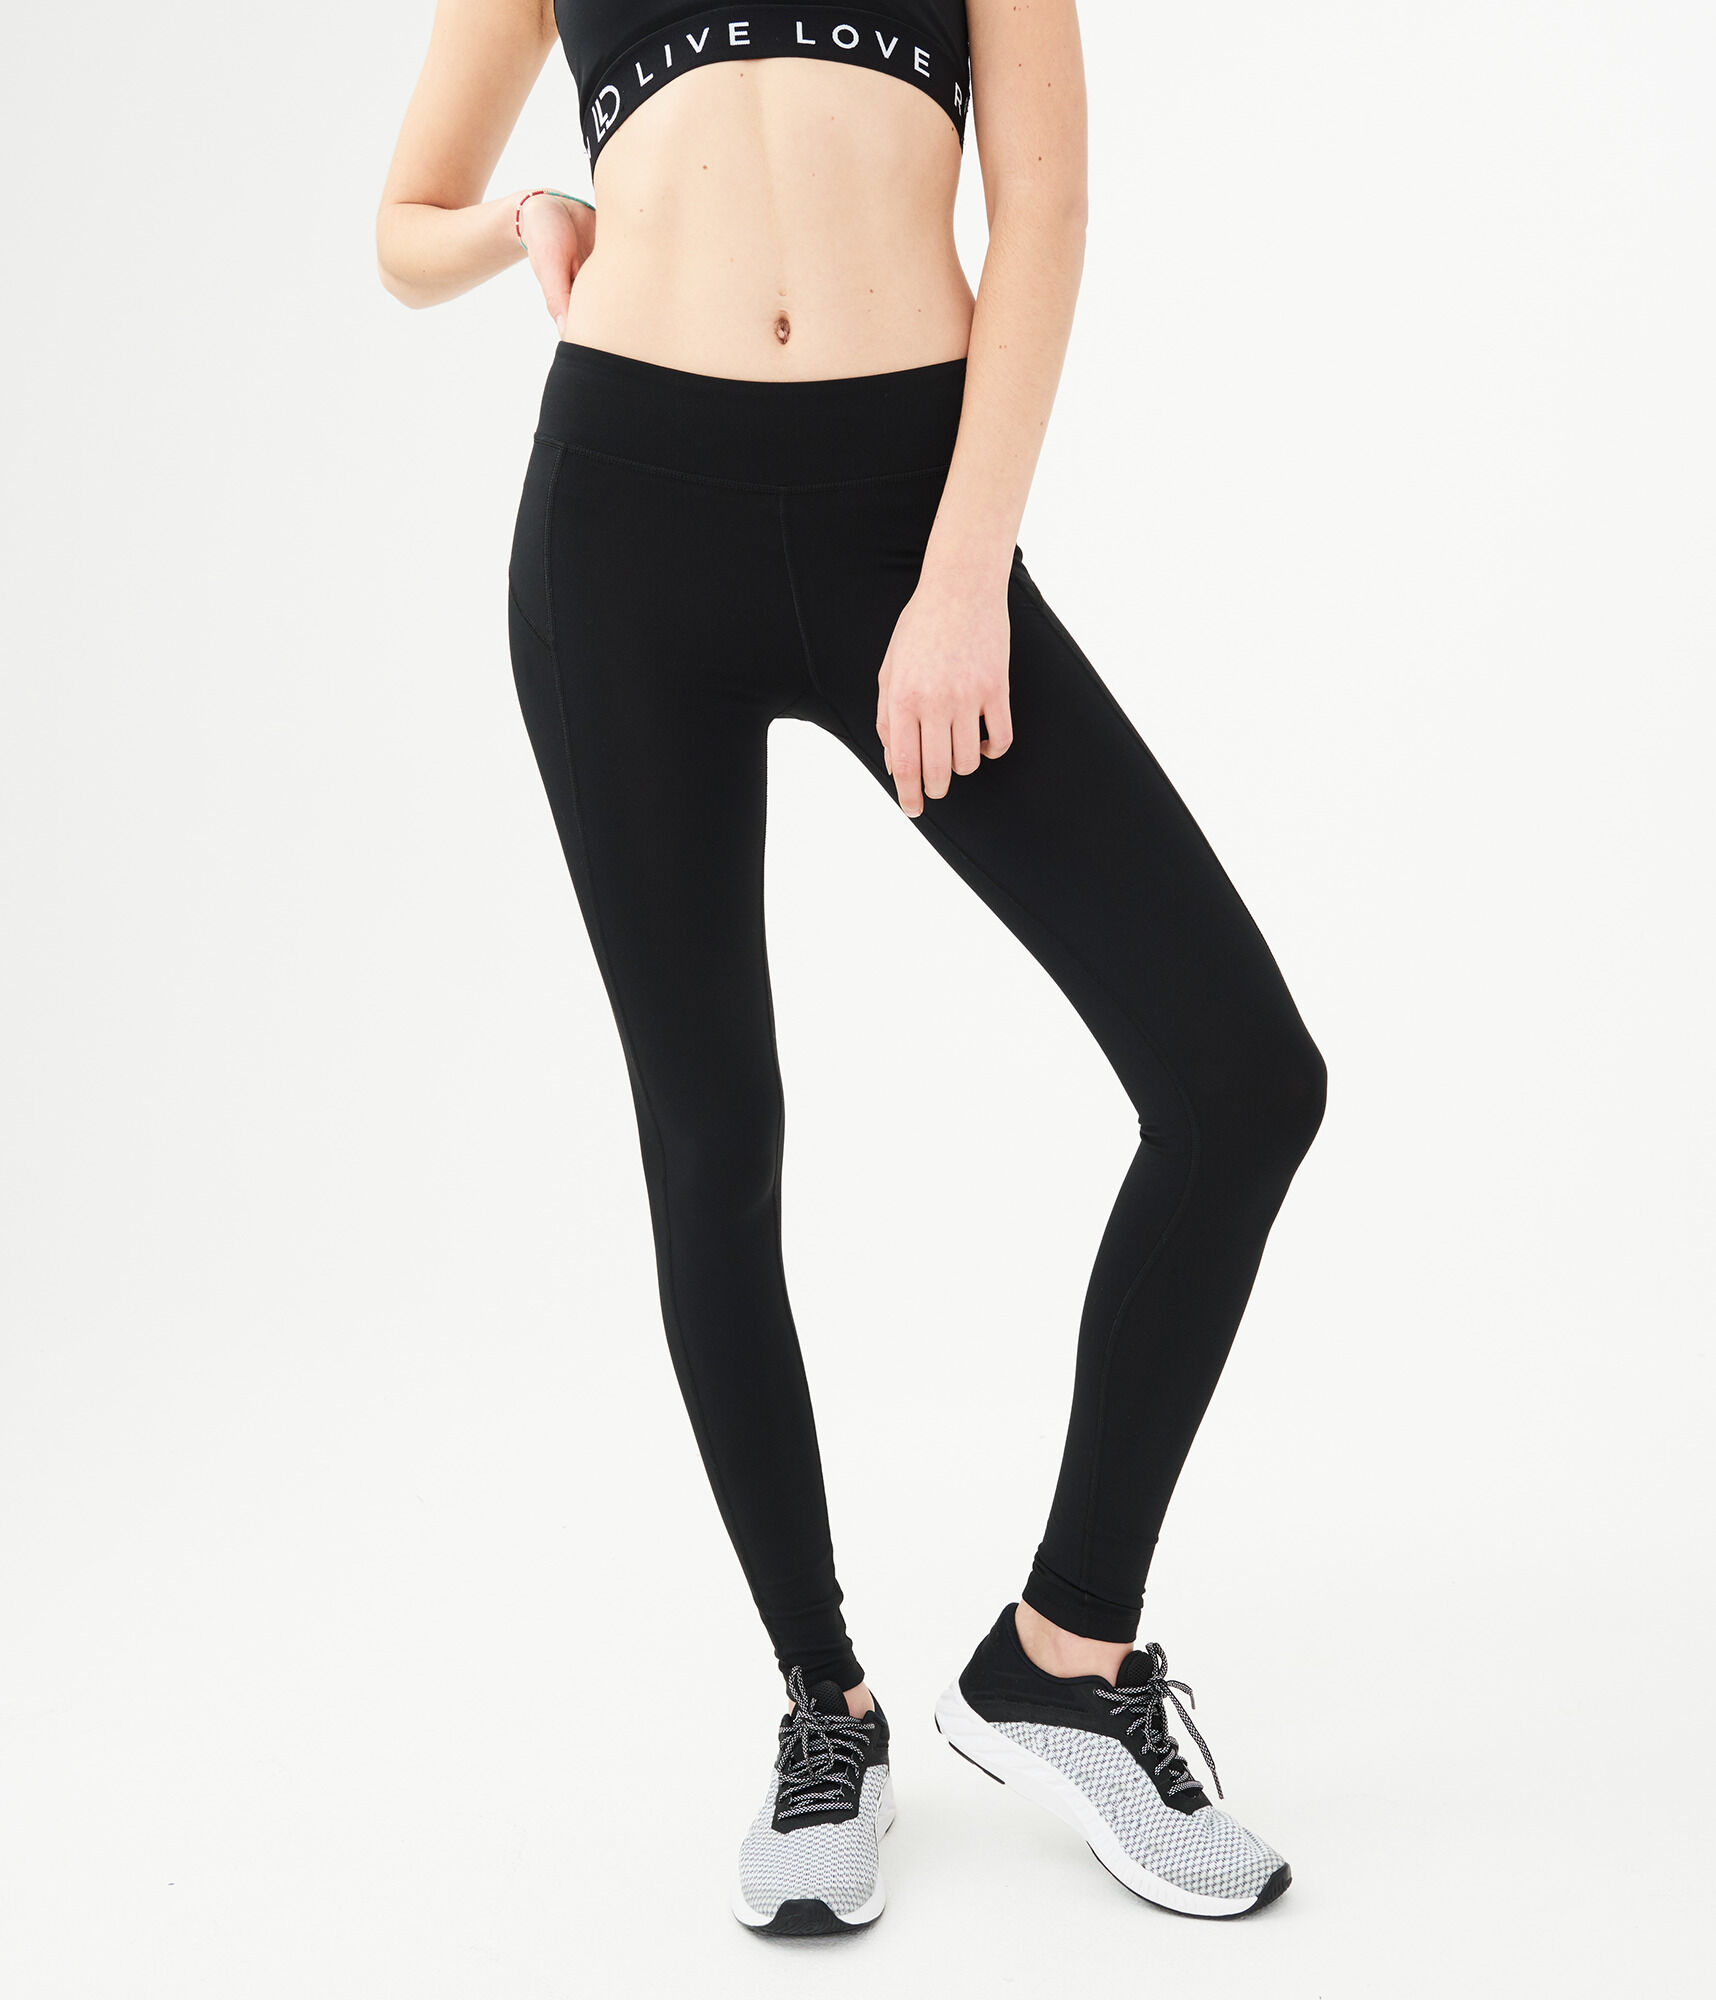 704d8447d93 LLD Best Booty Ever Solid Black Leggings - Women s Leggings ...